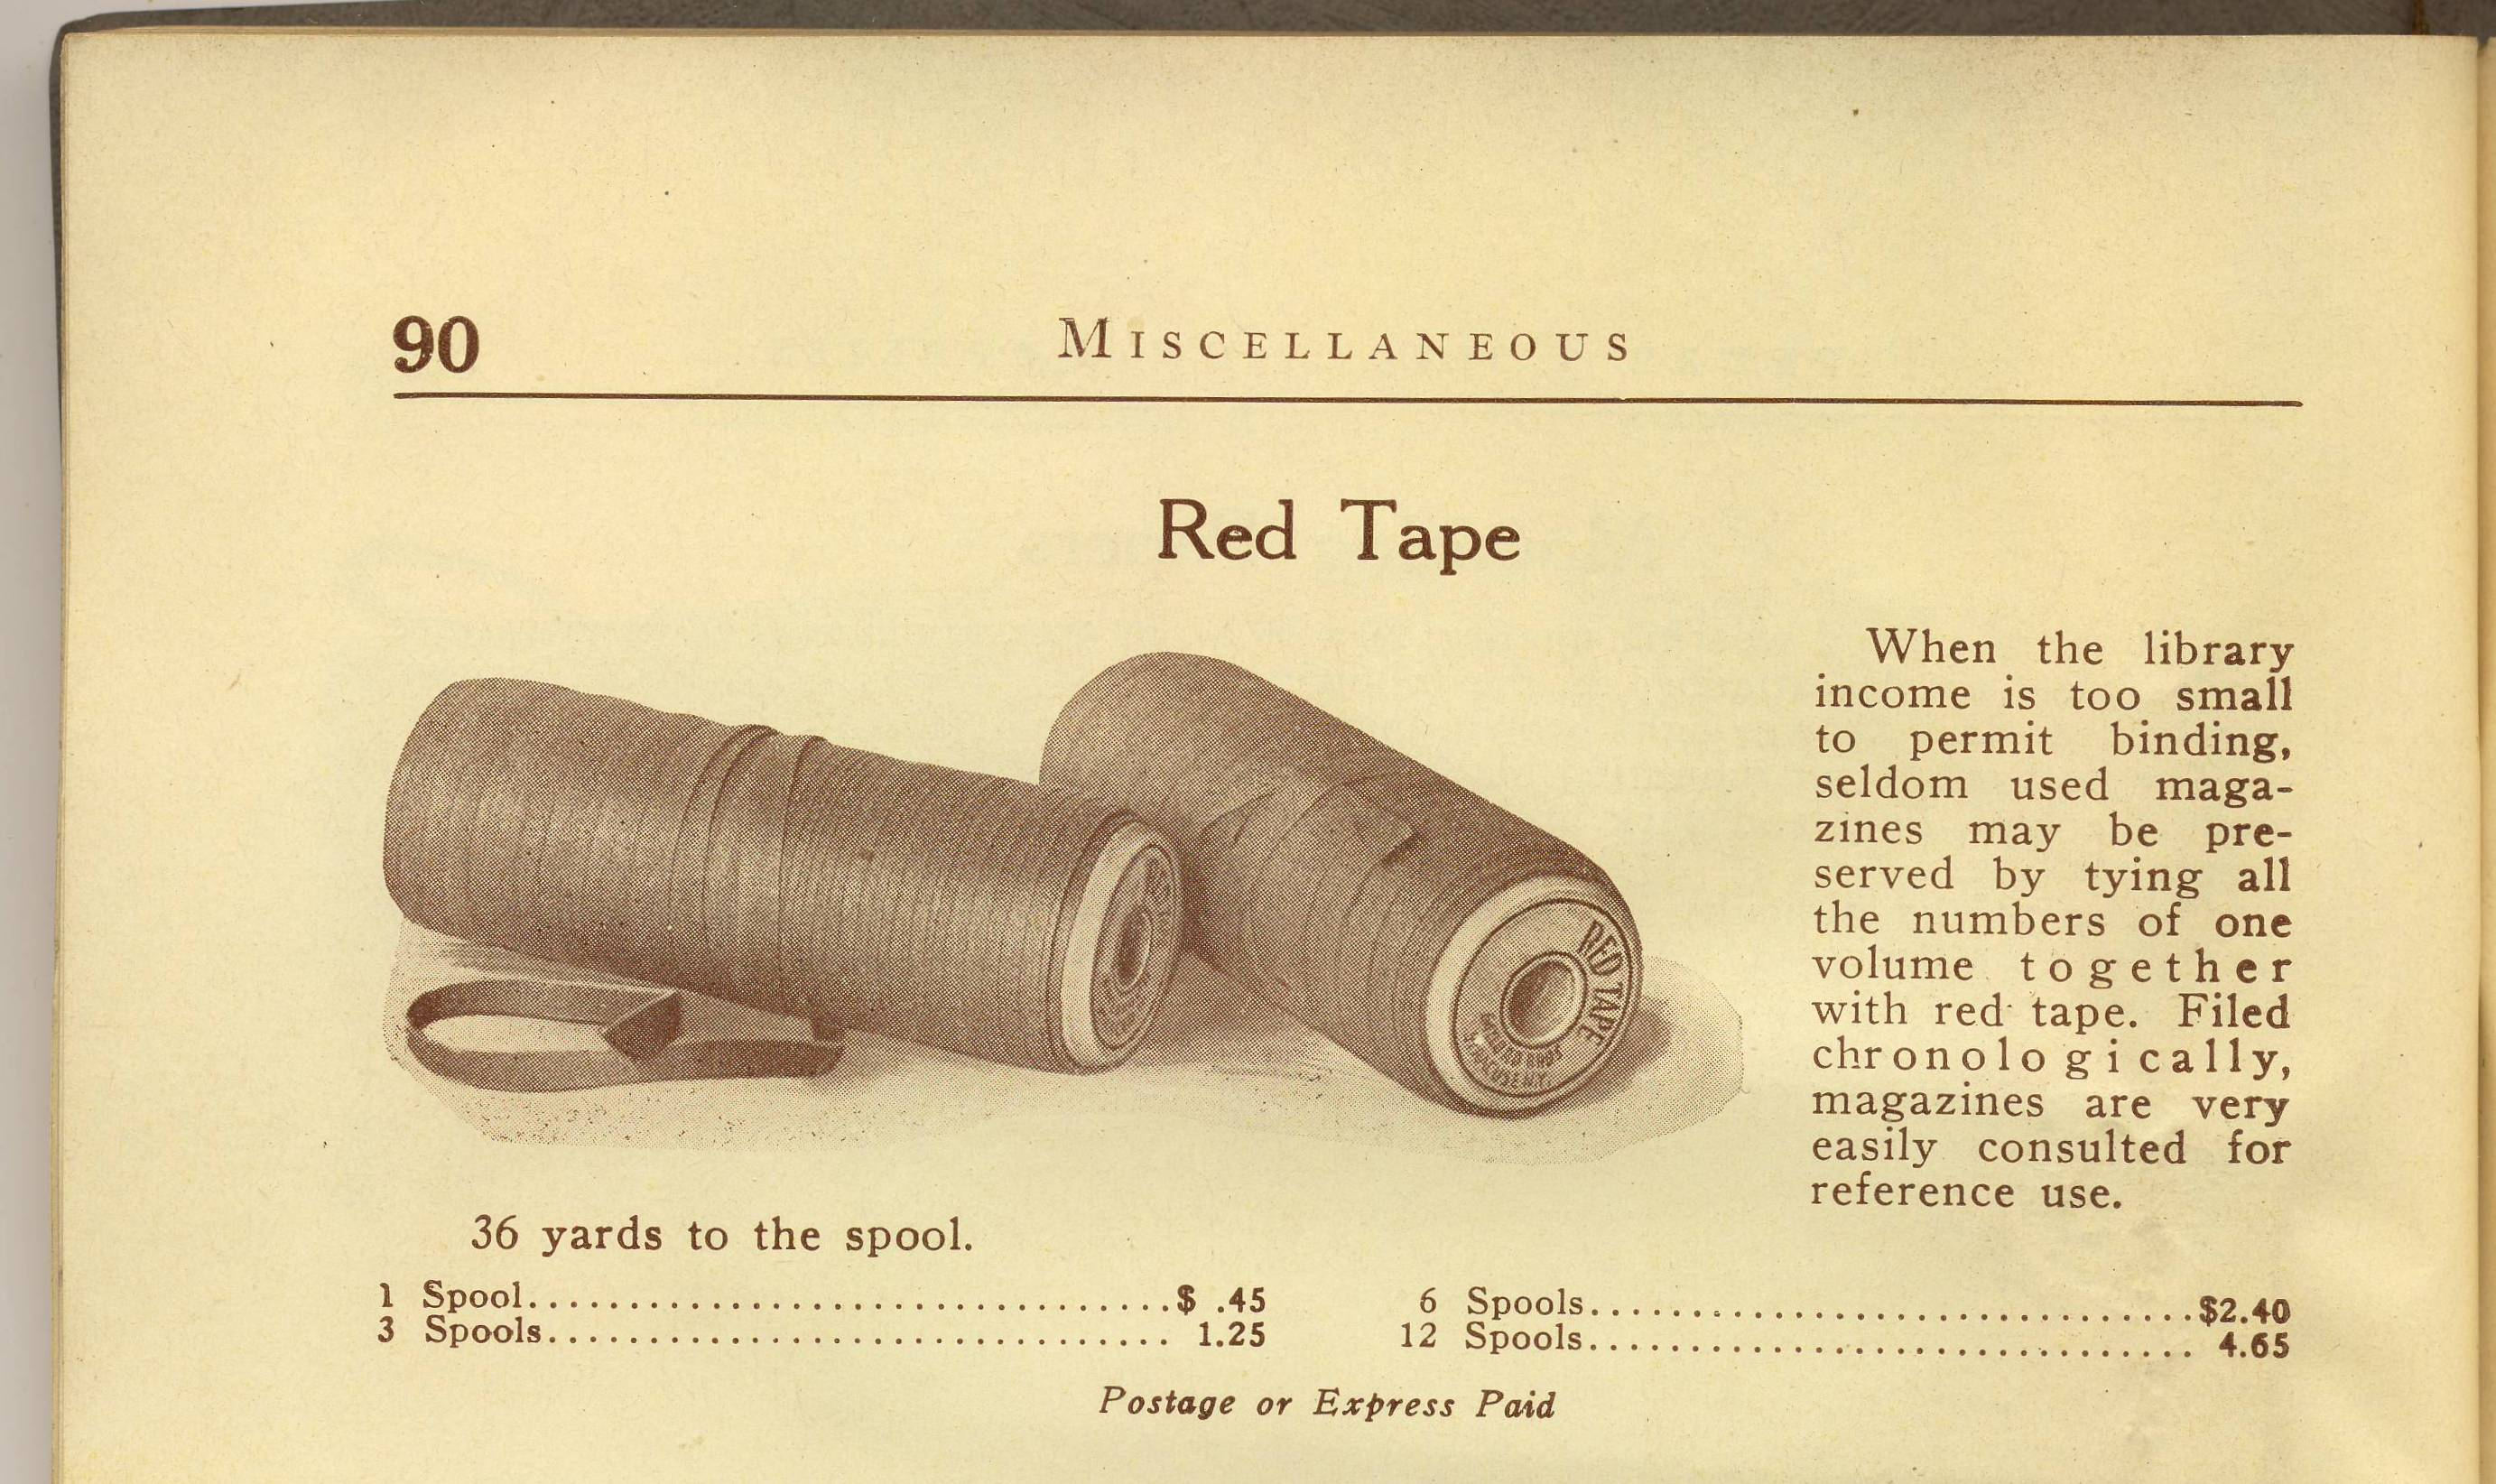 Gaylord Catalog - page 90 - Red Tape.jpg